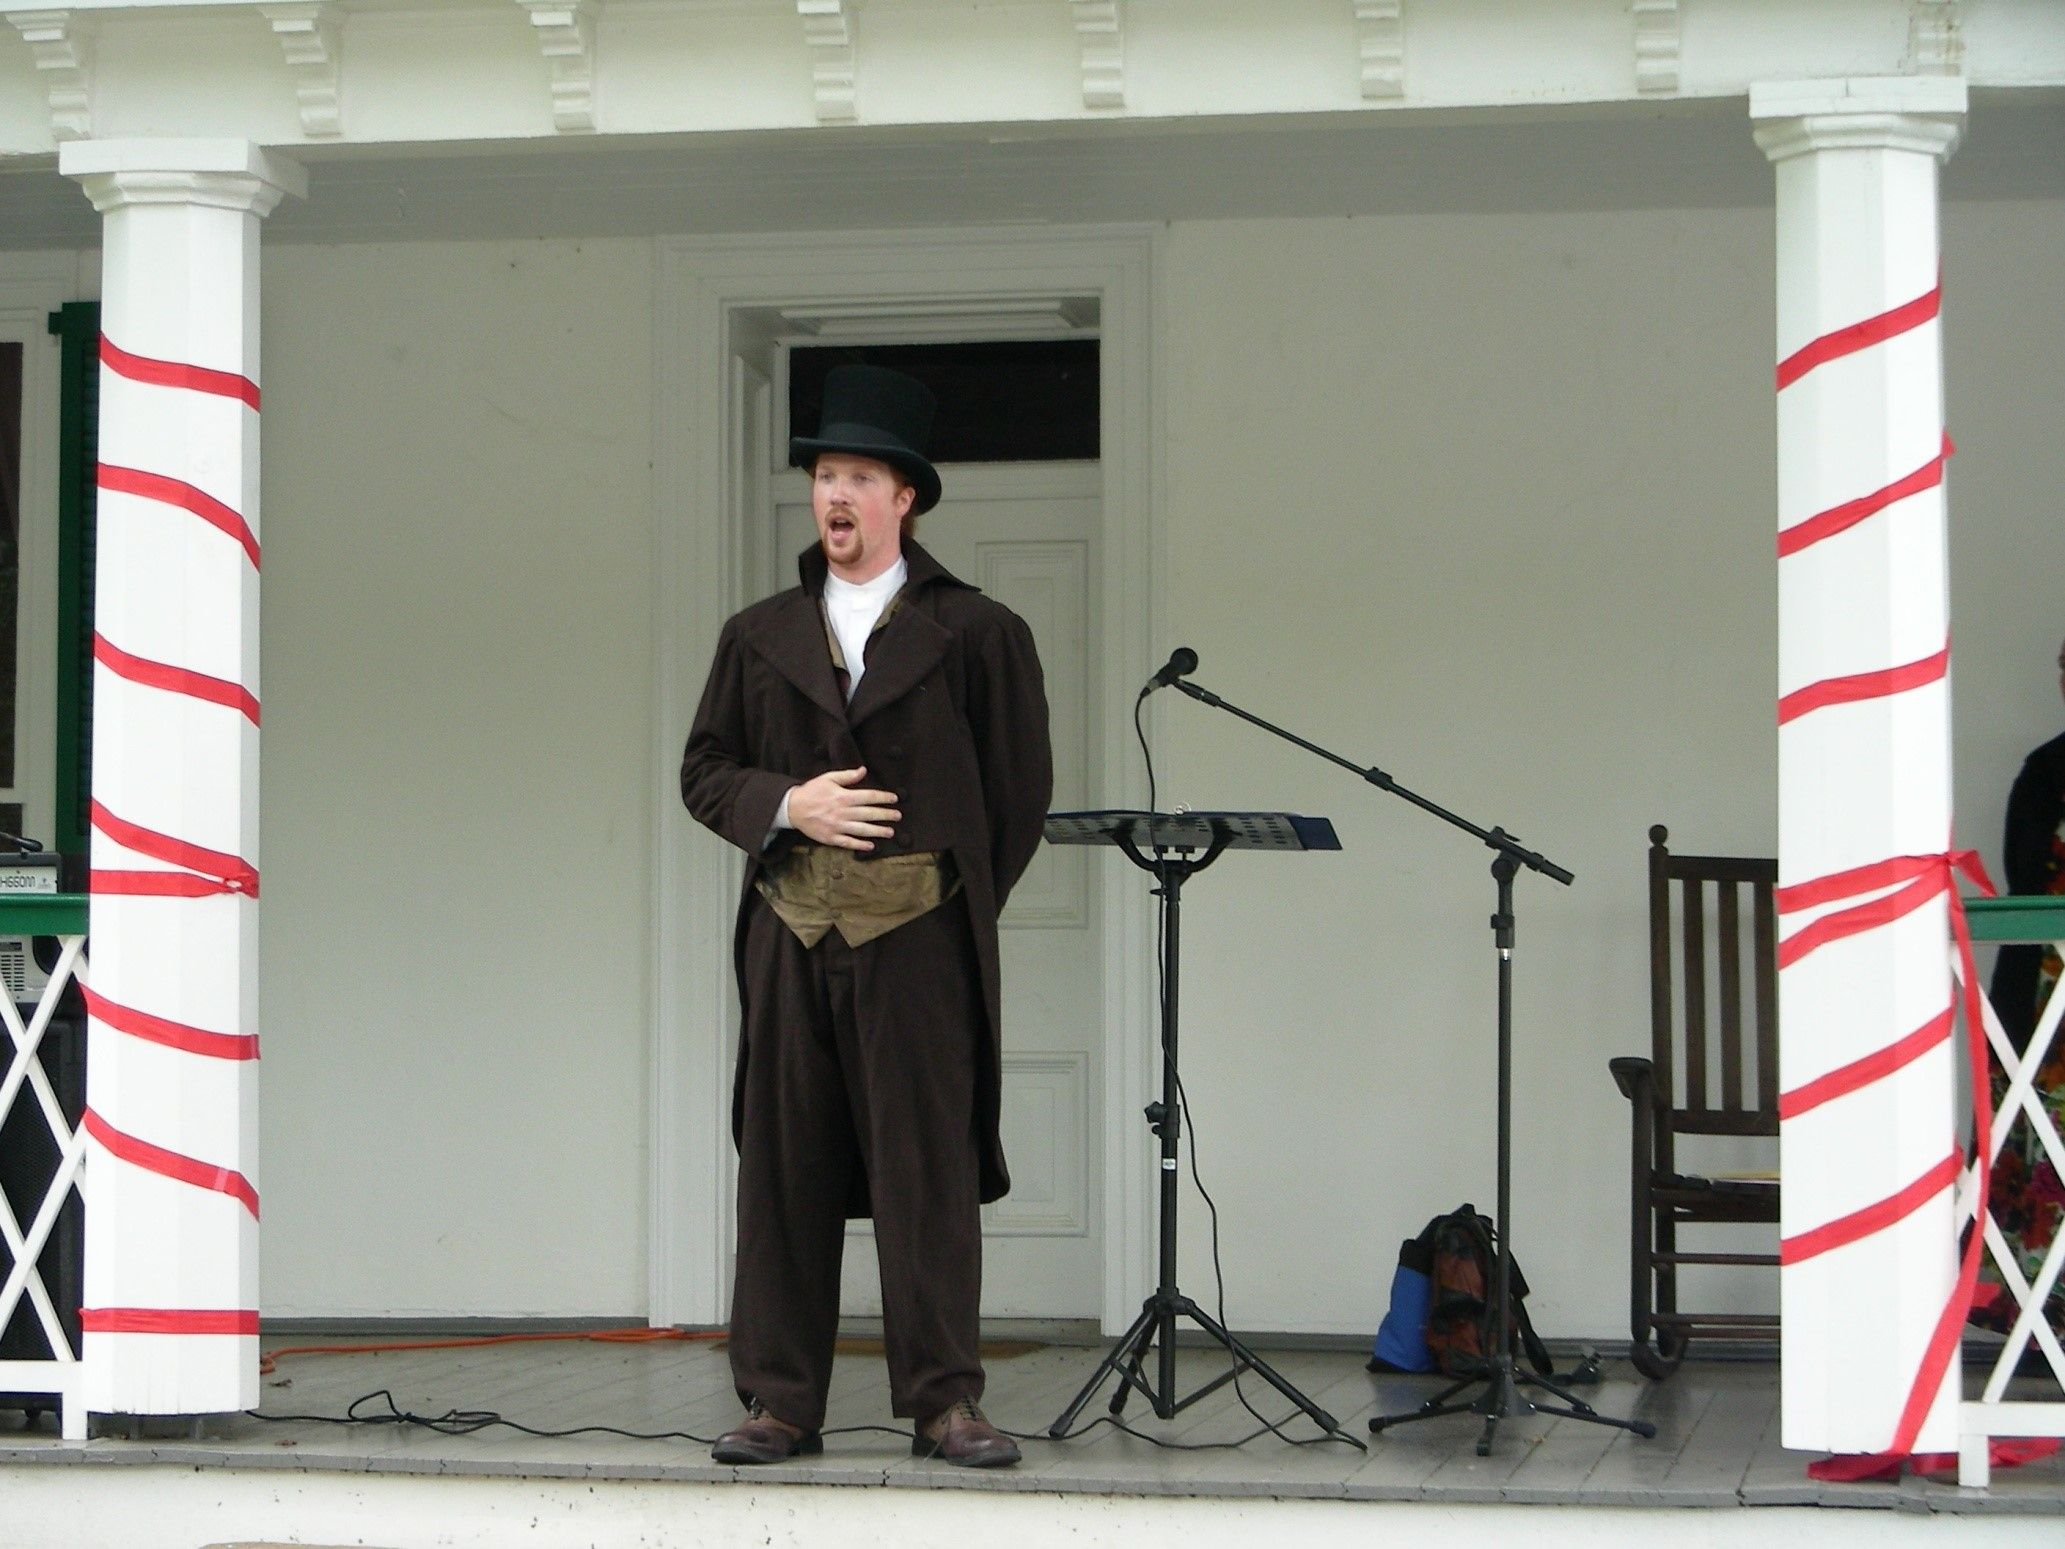 Celebrate July 4th at Hopewell Furnace National Historic Site